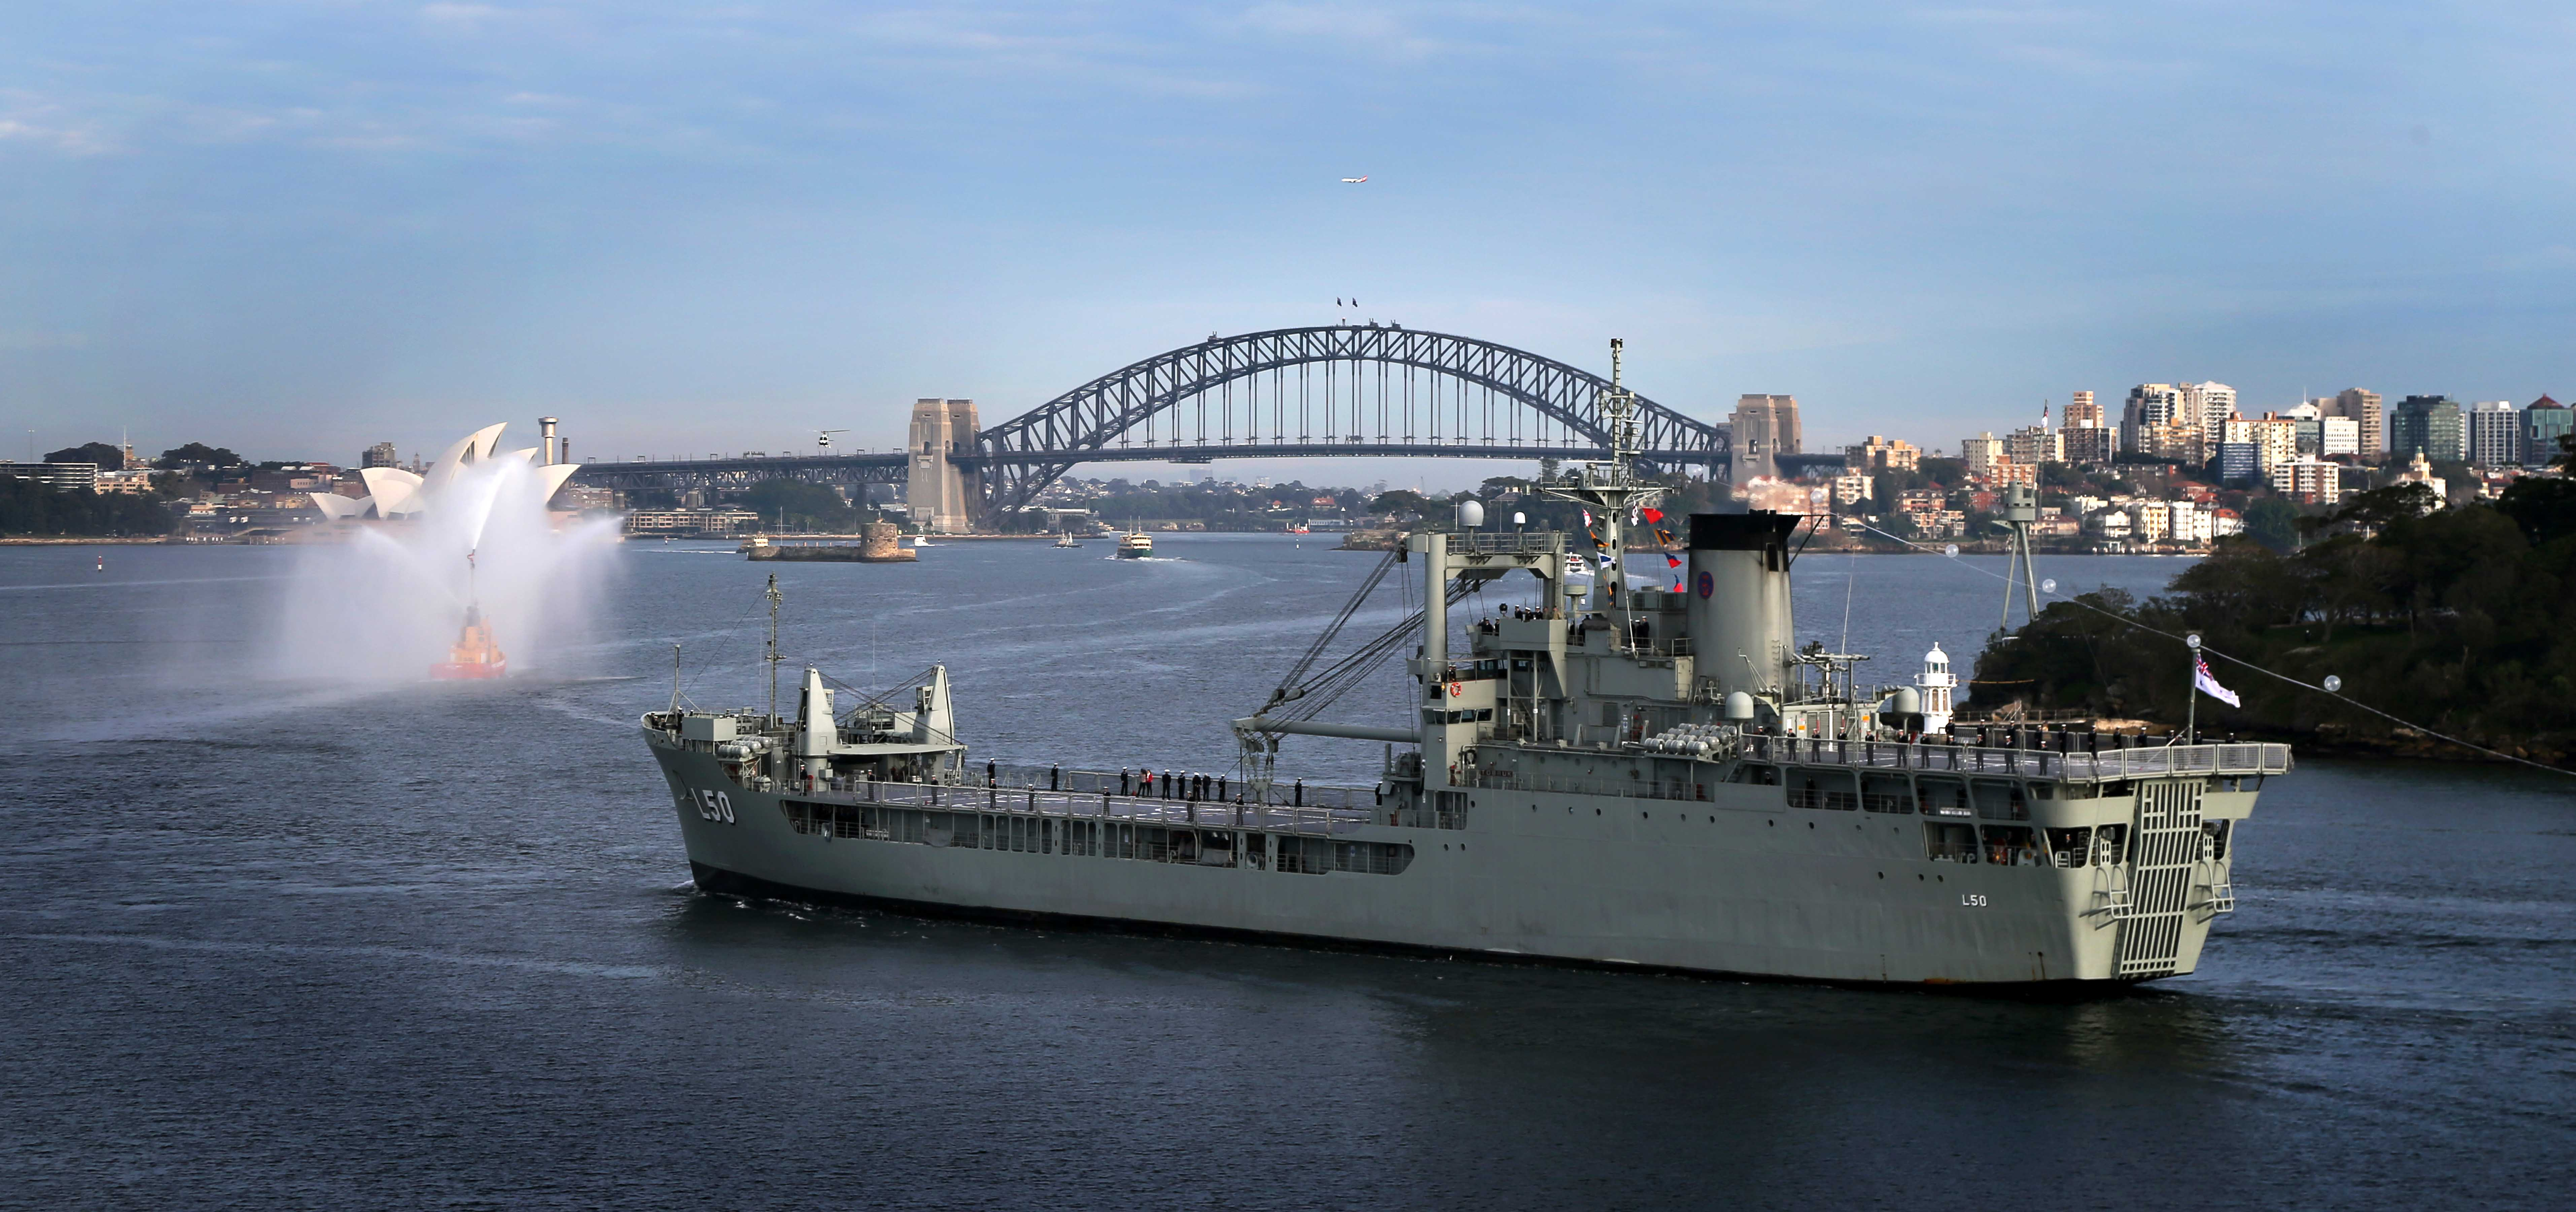 HMA Ships Task Group entry into Sydney